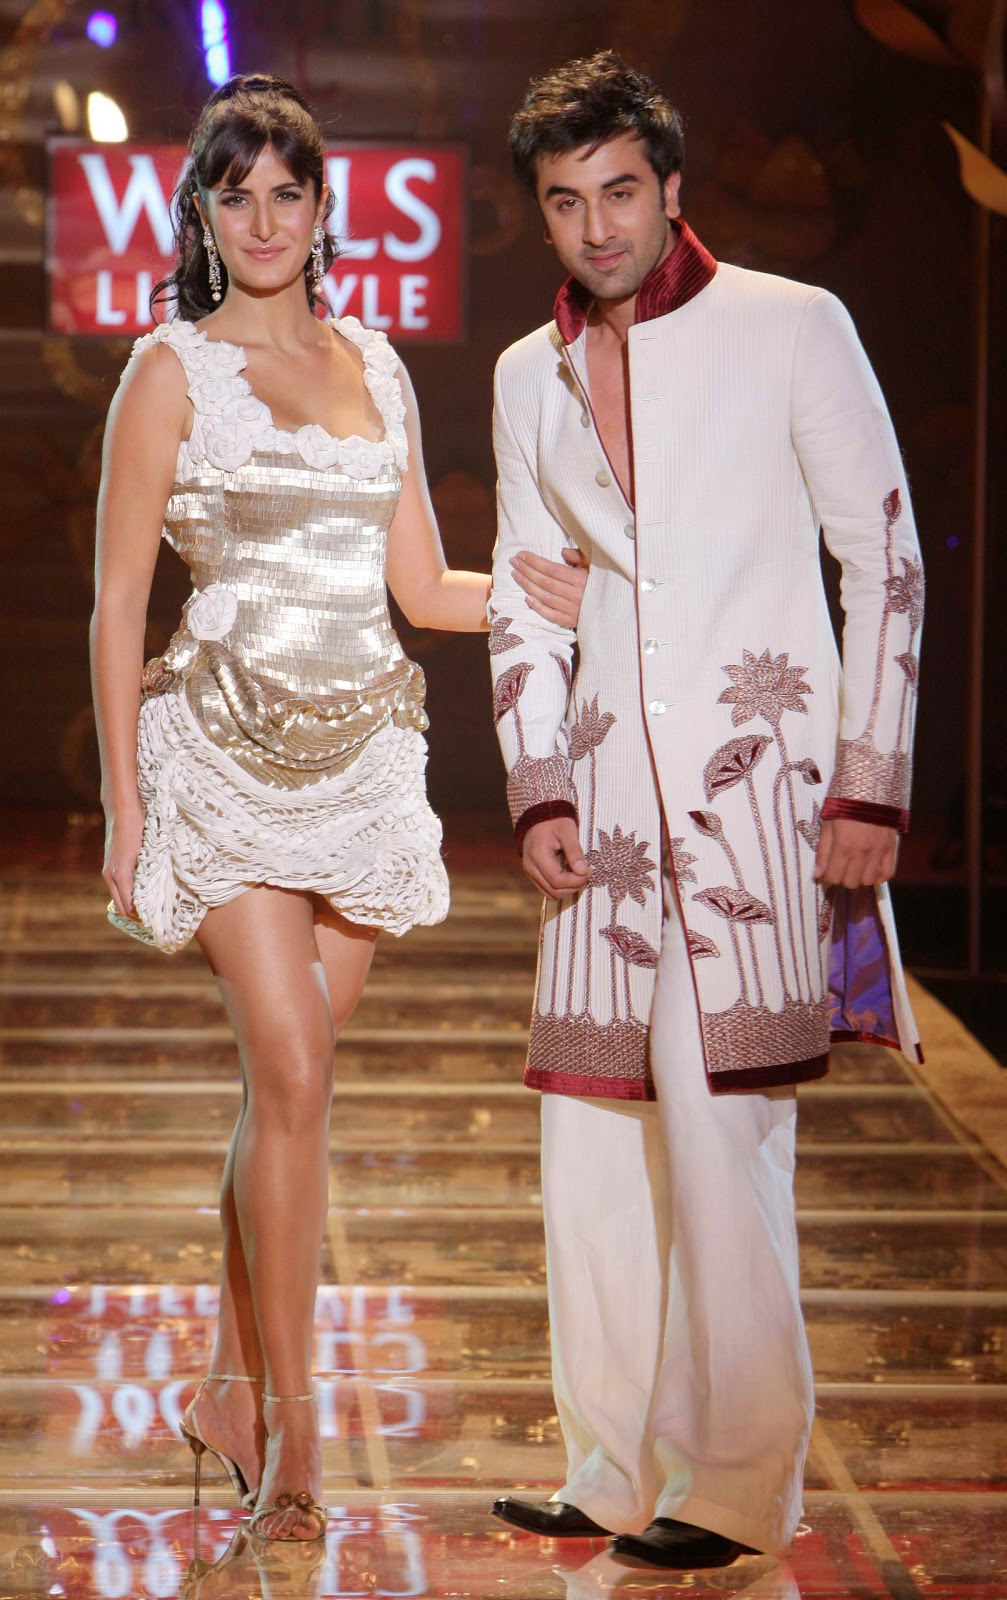 Katrina Kaif Showcasing Her Sexy Legs as She Walks On Ramp With Ranbir Kapoor For Rohit Bal at Wills Lifestyle India Fashion Week (WLIFW)